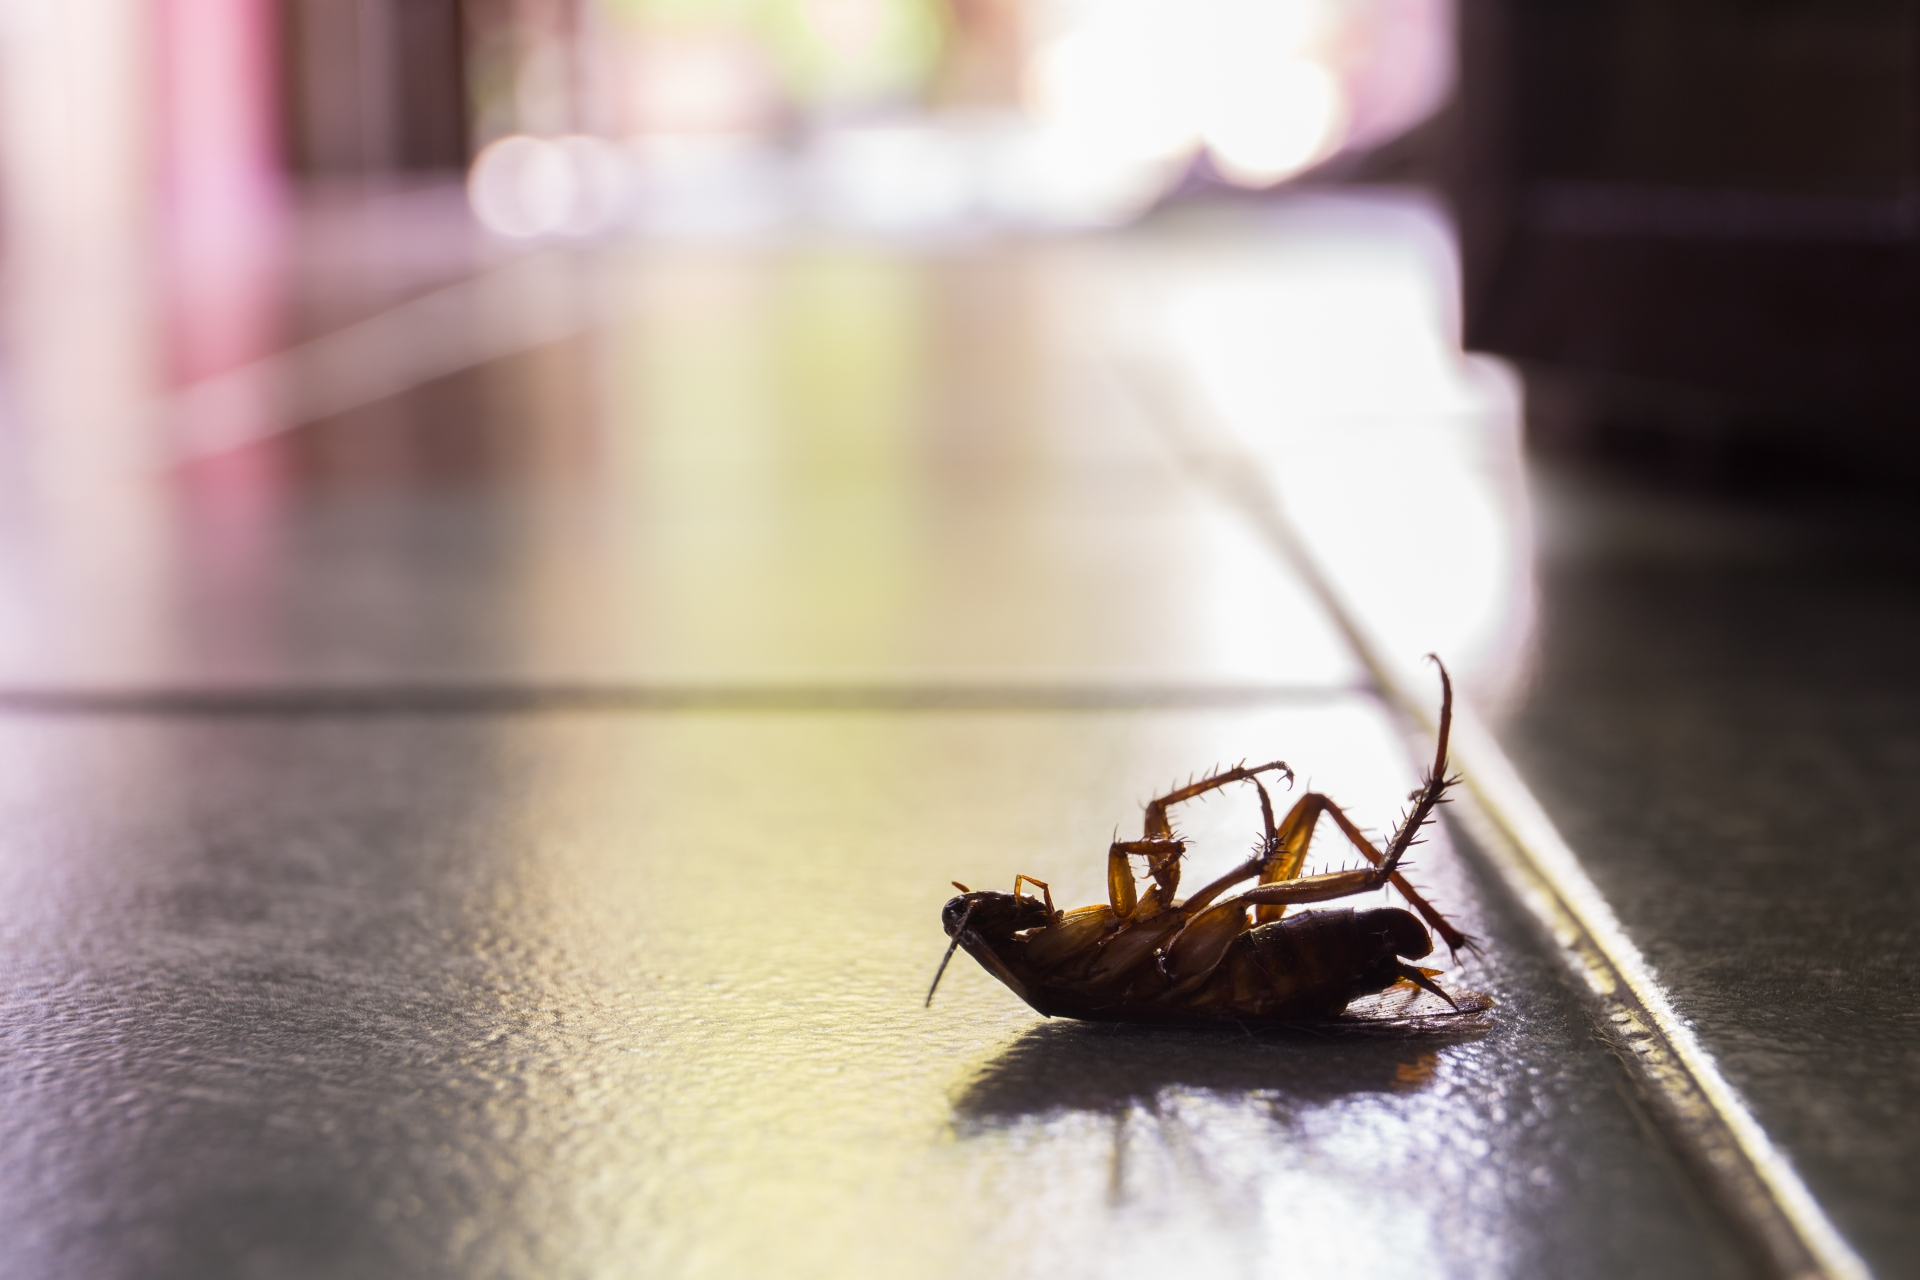 Cockroach Control, Pest Control in South Woodford, E18. Call Now 020 8166 9746